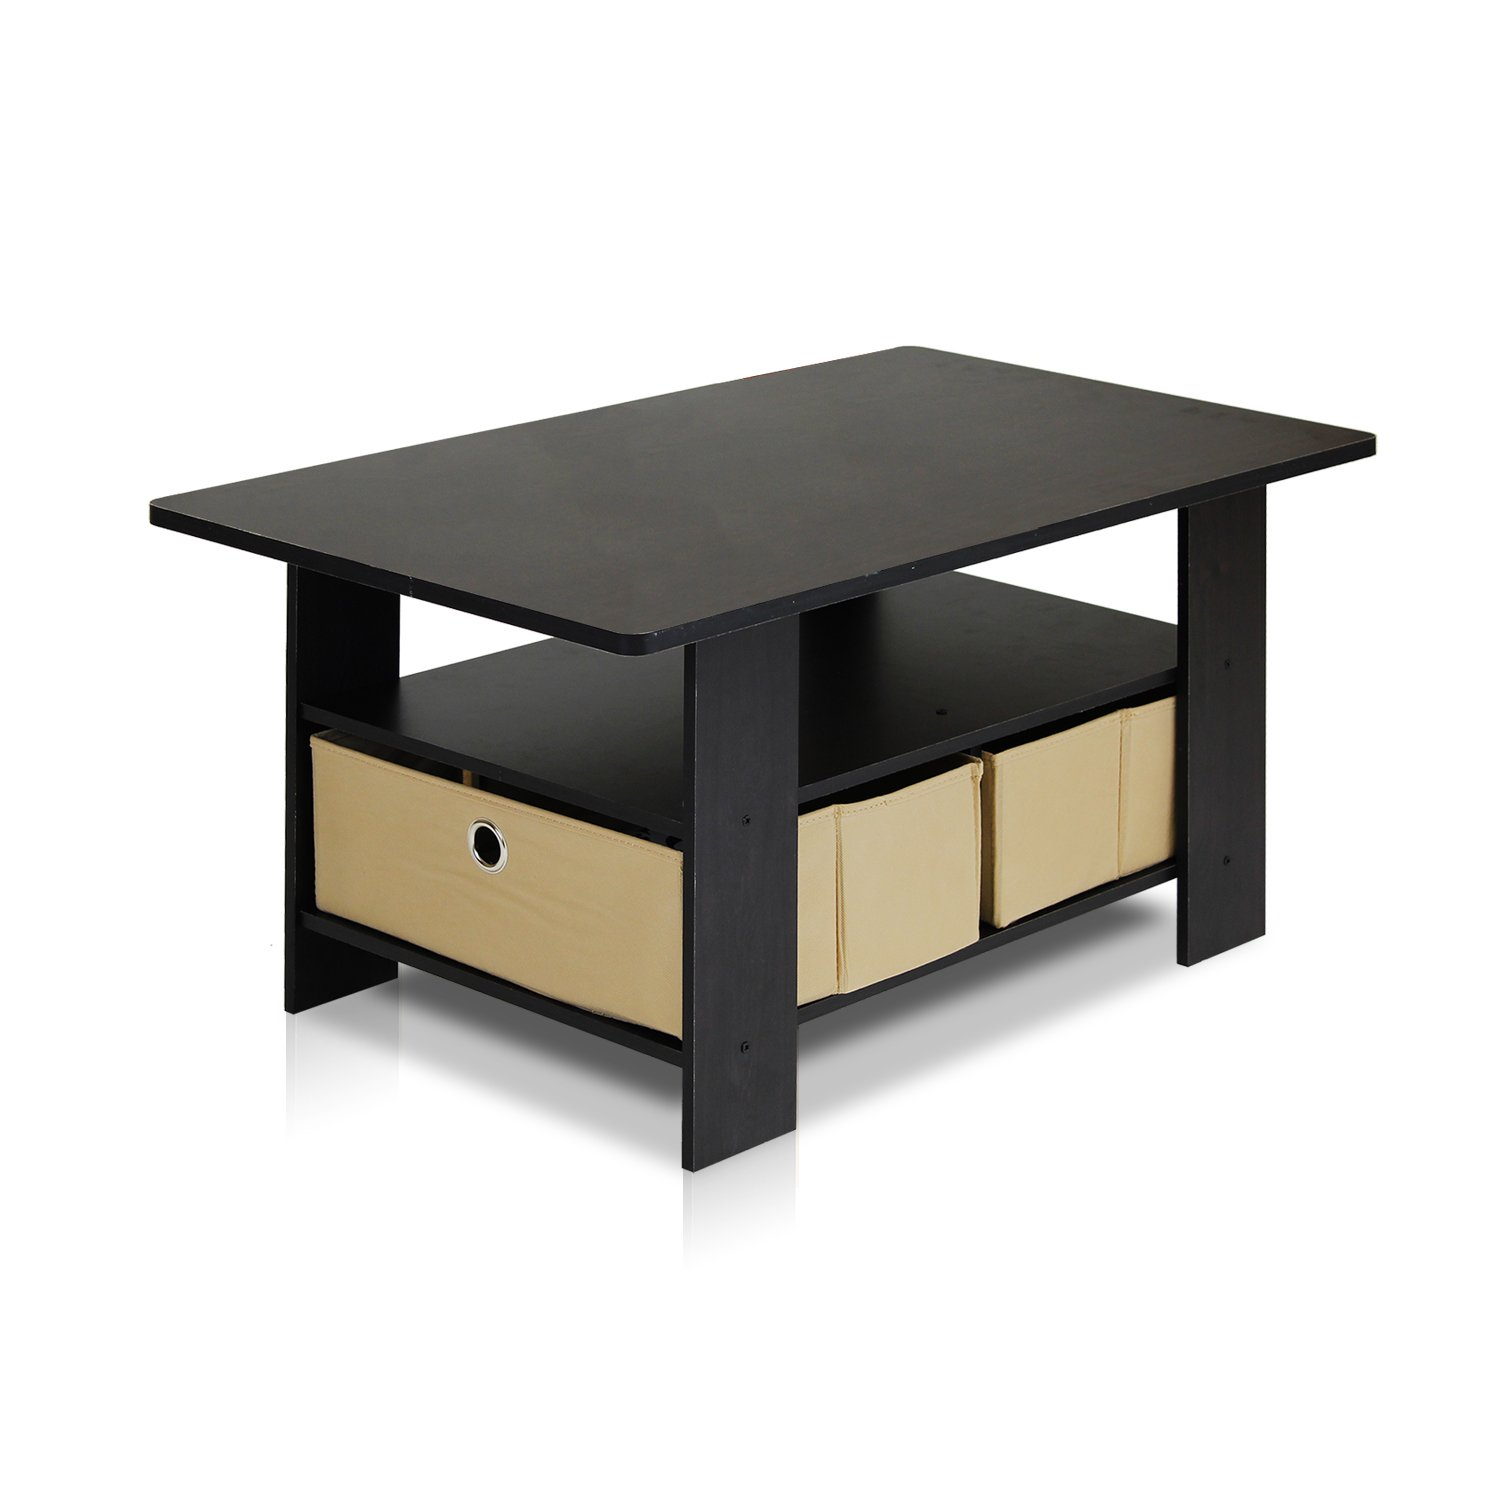 Merveilleux Amazon.com: Furinno 11158EX/BR Coffee Table With Bins, Espresso/Brown:  Kitchen U0026 Dining